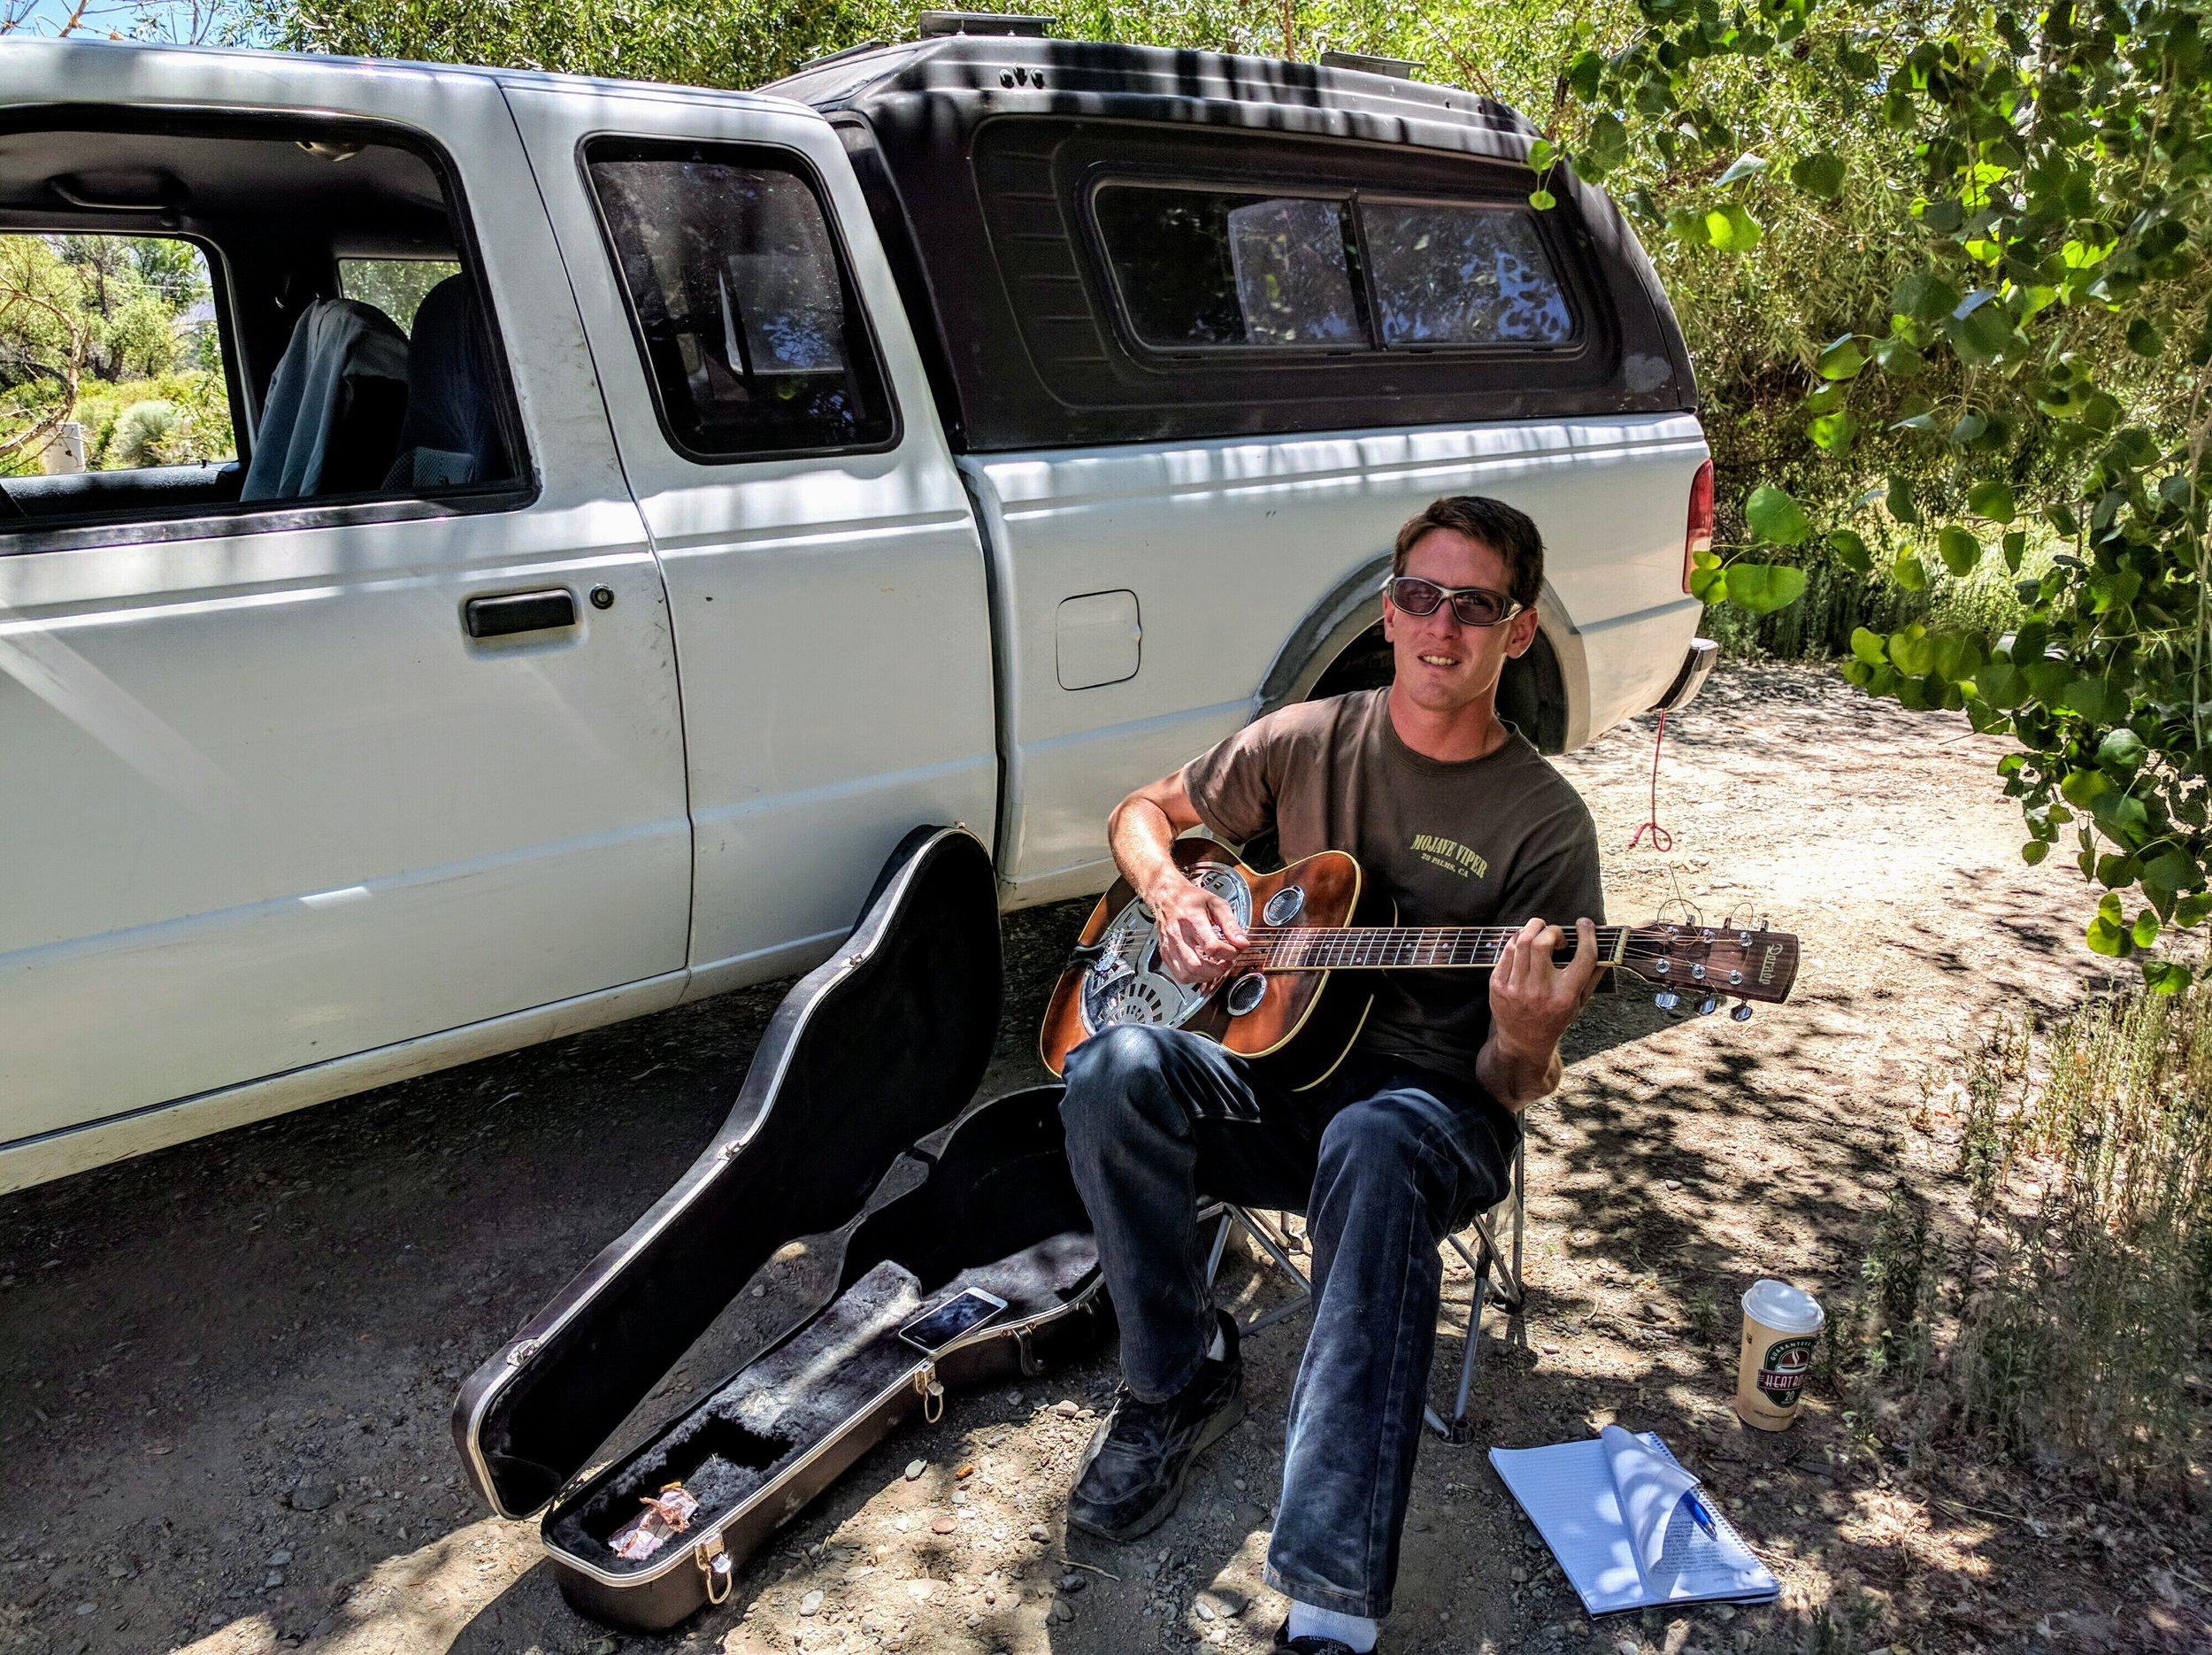 Teddy Ryan playing his guitar under the cool shade of a tree along the canal.